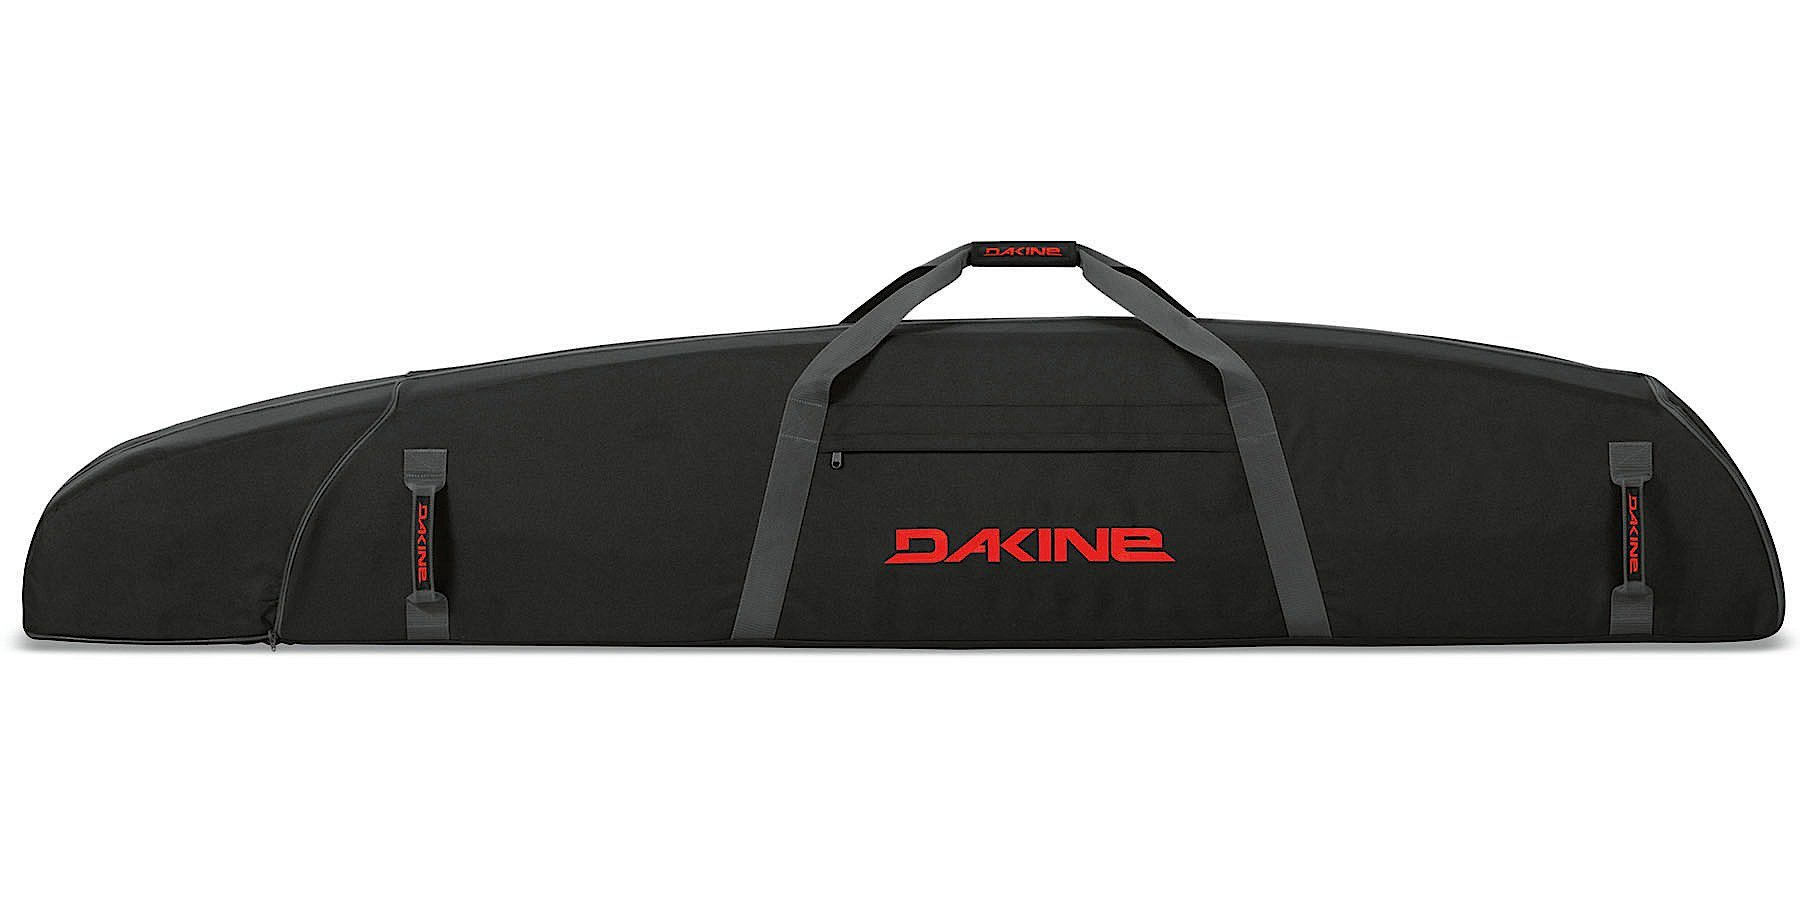 Dakine Adjustable Quiver Bag Black 6-8ft (183-243cm)